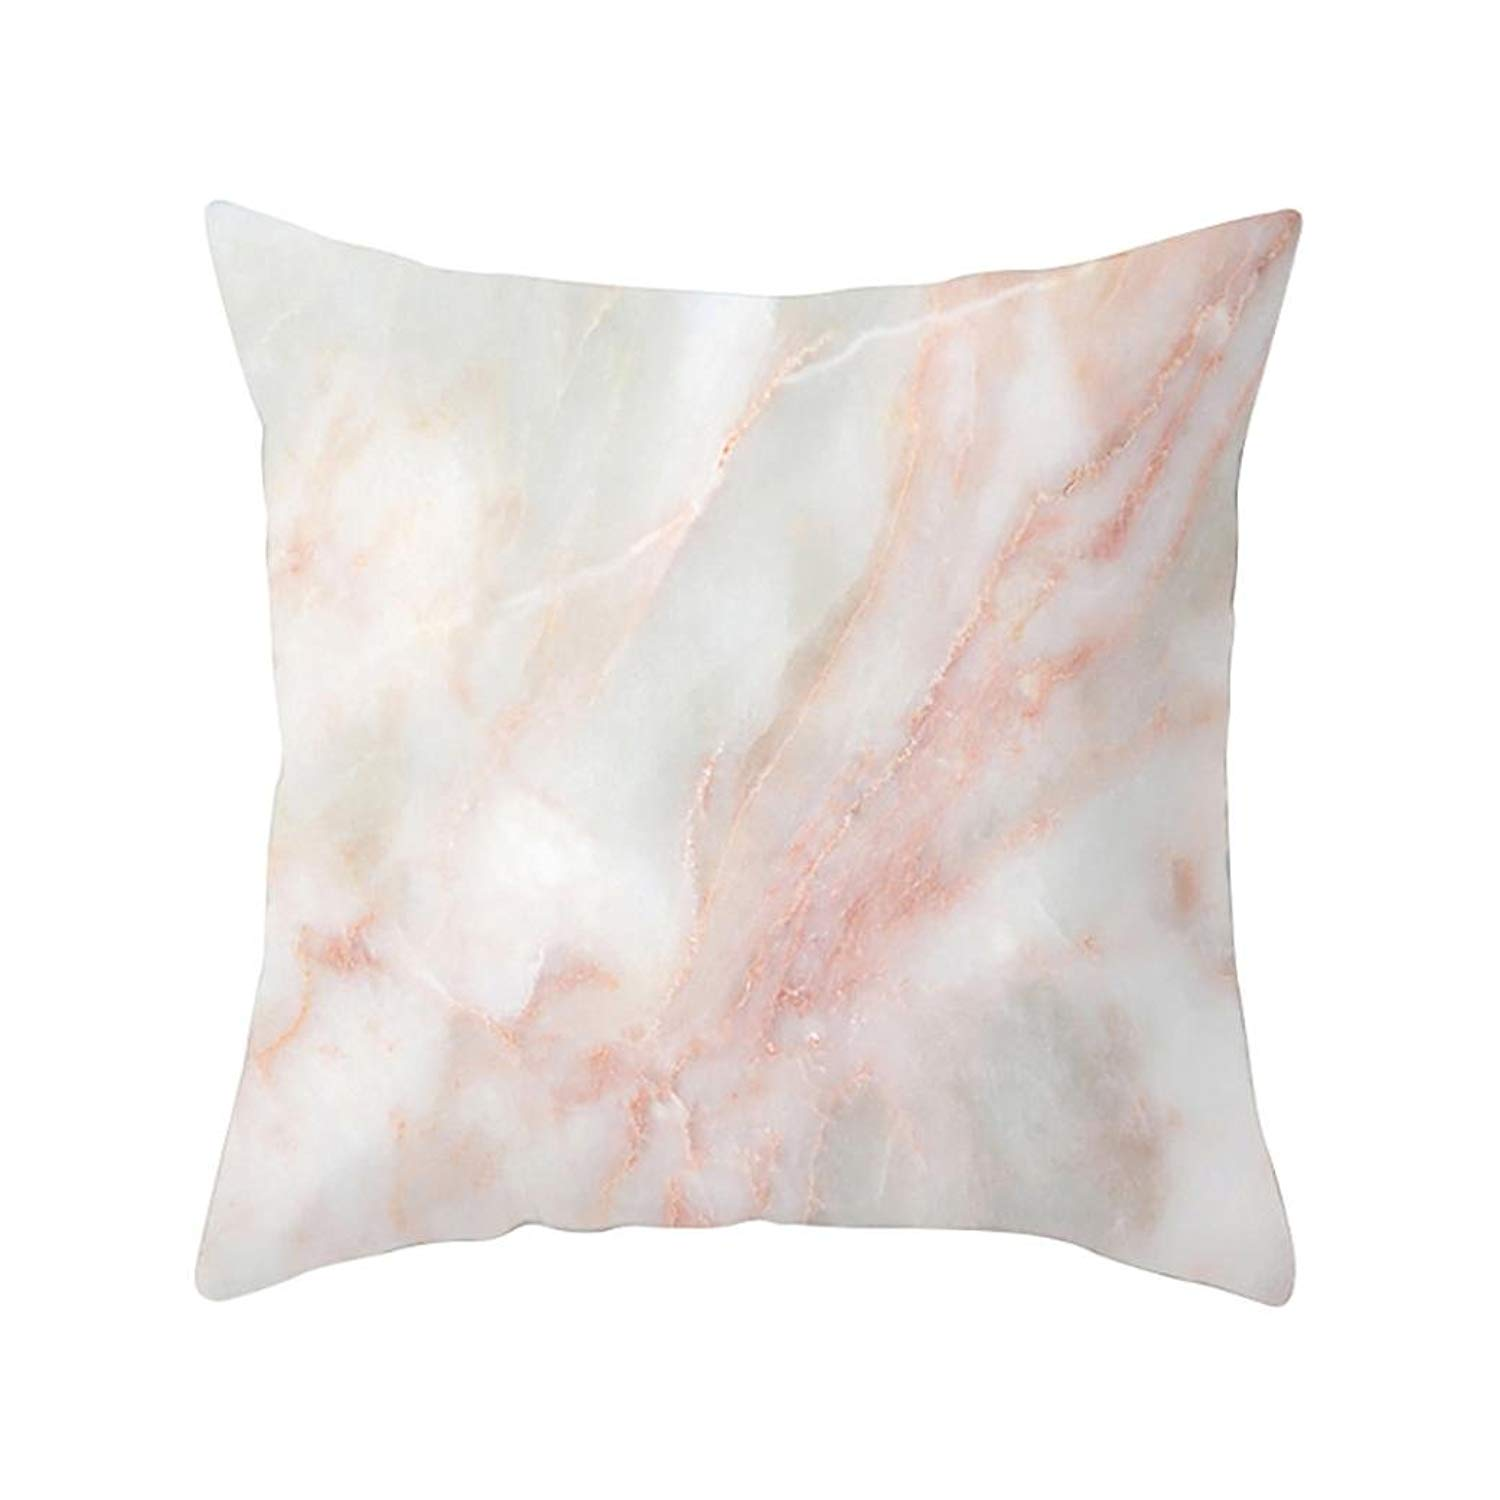 MaxFox Fabric Throw Pillow Cover 18 x 18 Inch 45 x 45 Cm Geometric Marble Texture Pillow Cover for Sofa Bedroom Car Decor